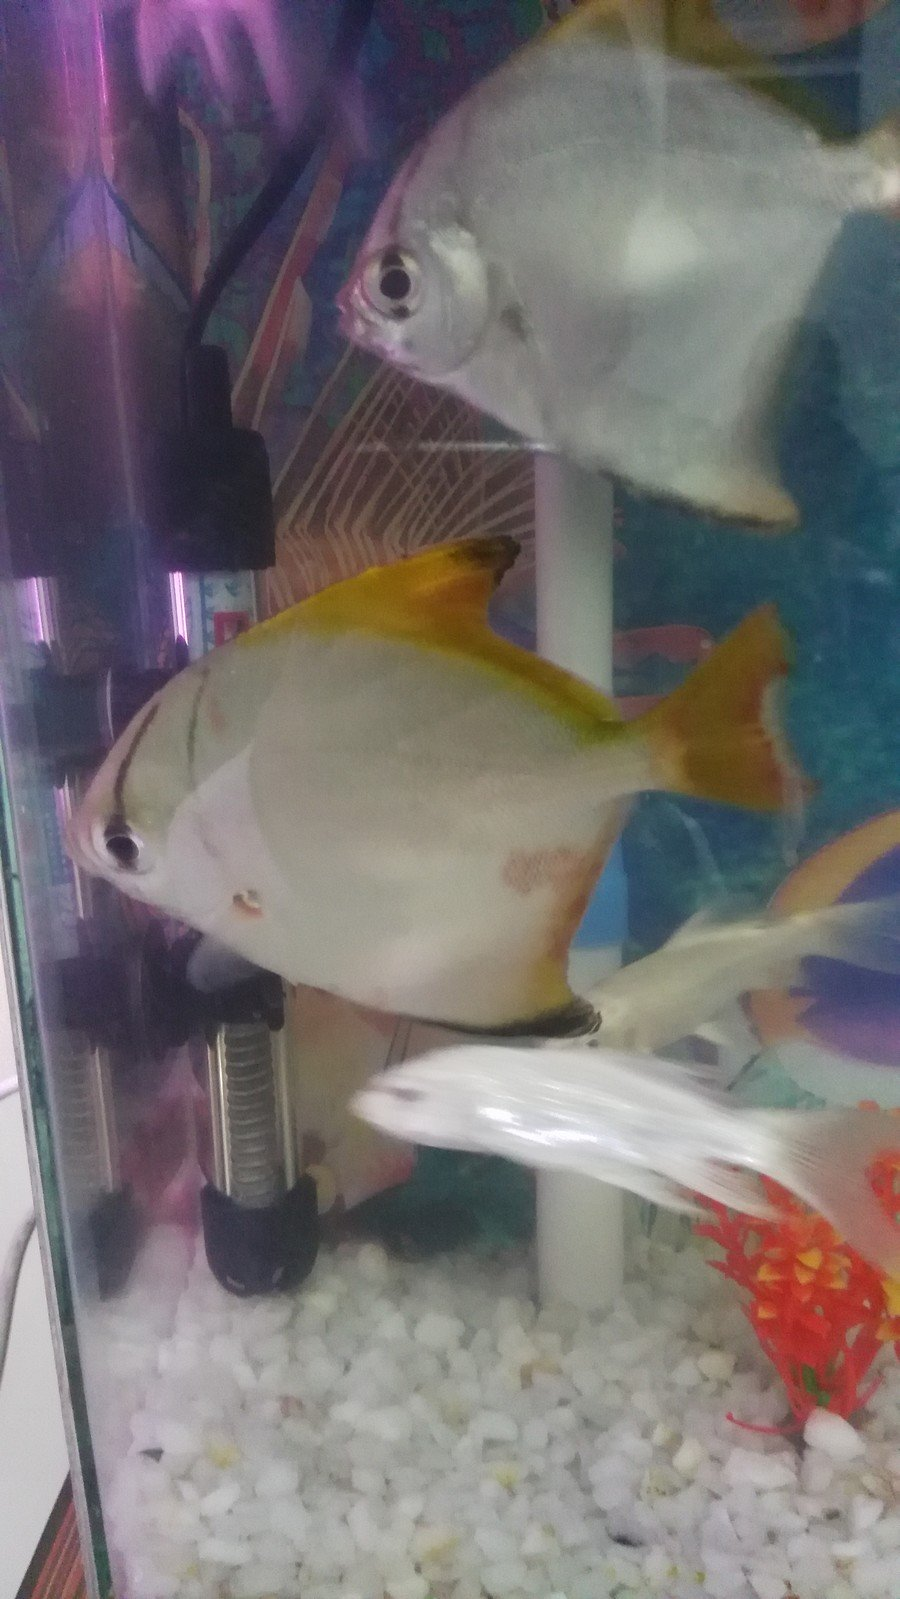 Fish in my aquarium are dying - My Angel Fish Has Red Blotches Is It Hurt Or Dying